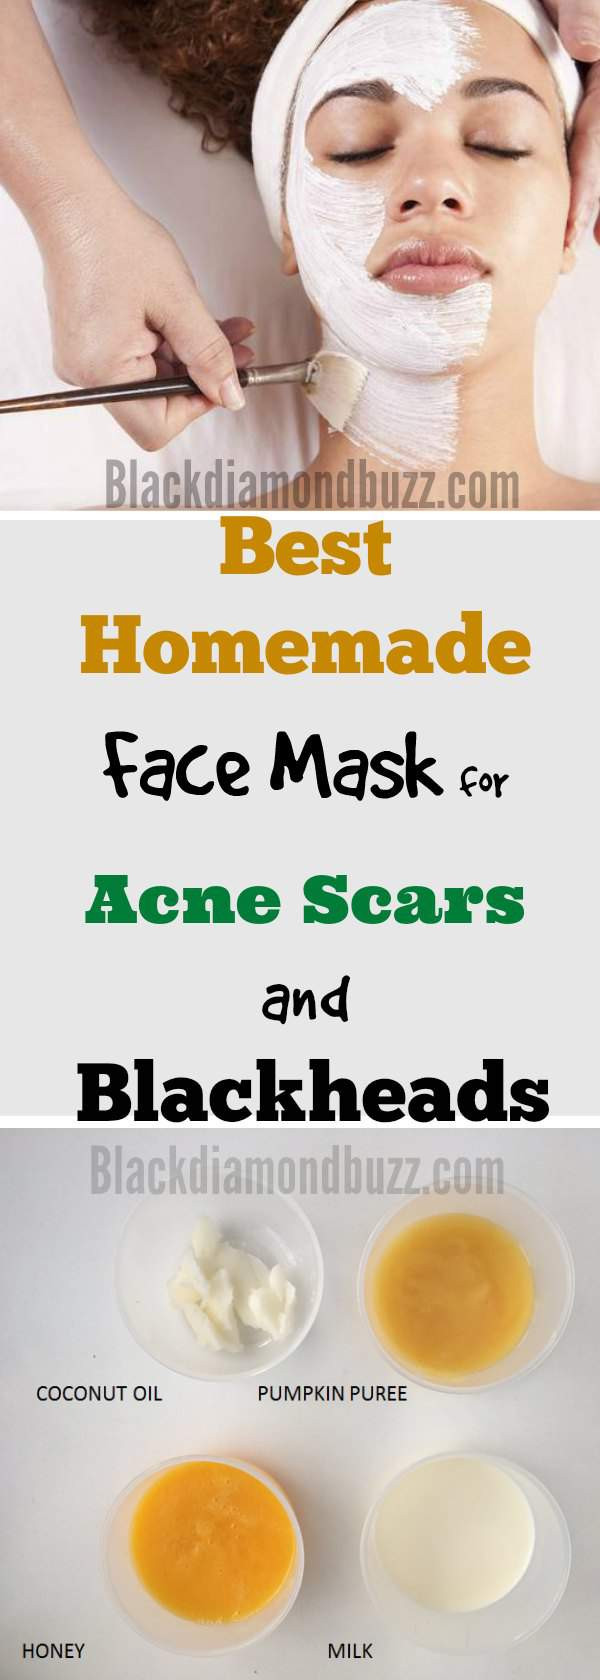 Best ideas about DIY Face Mask For Pimples . Save or Pin Diy Honey Mask For Acne Scars Do It Your Self Now.